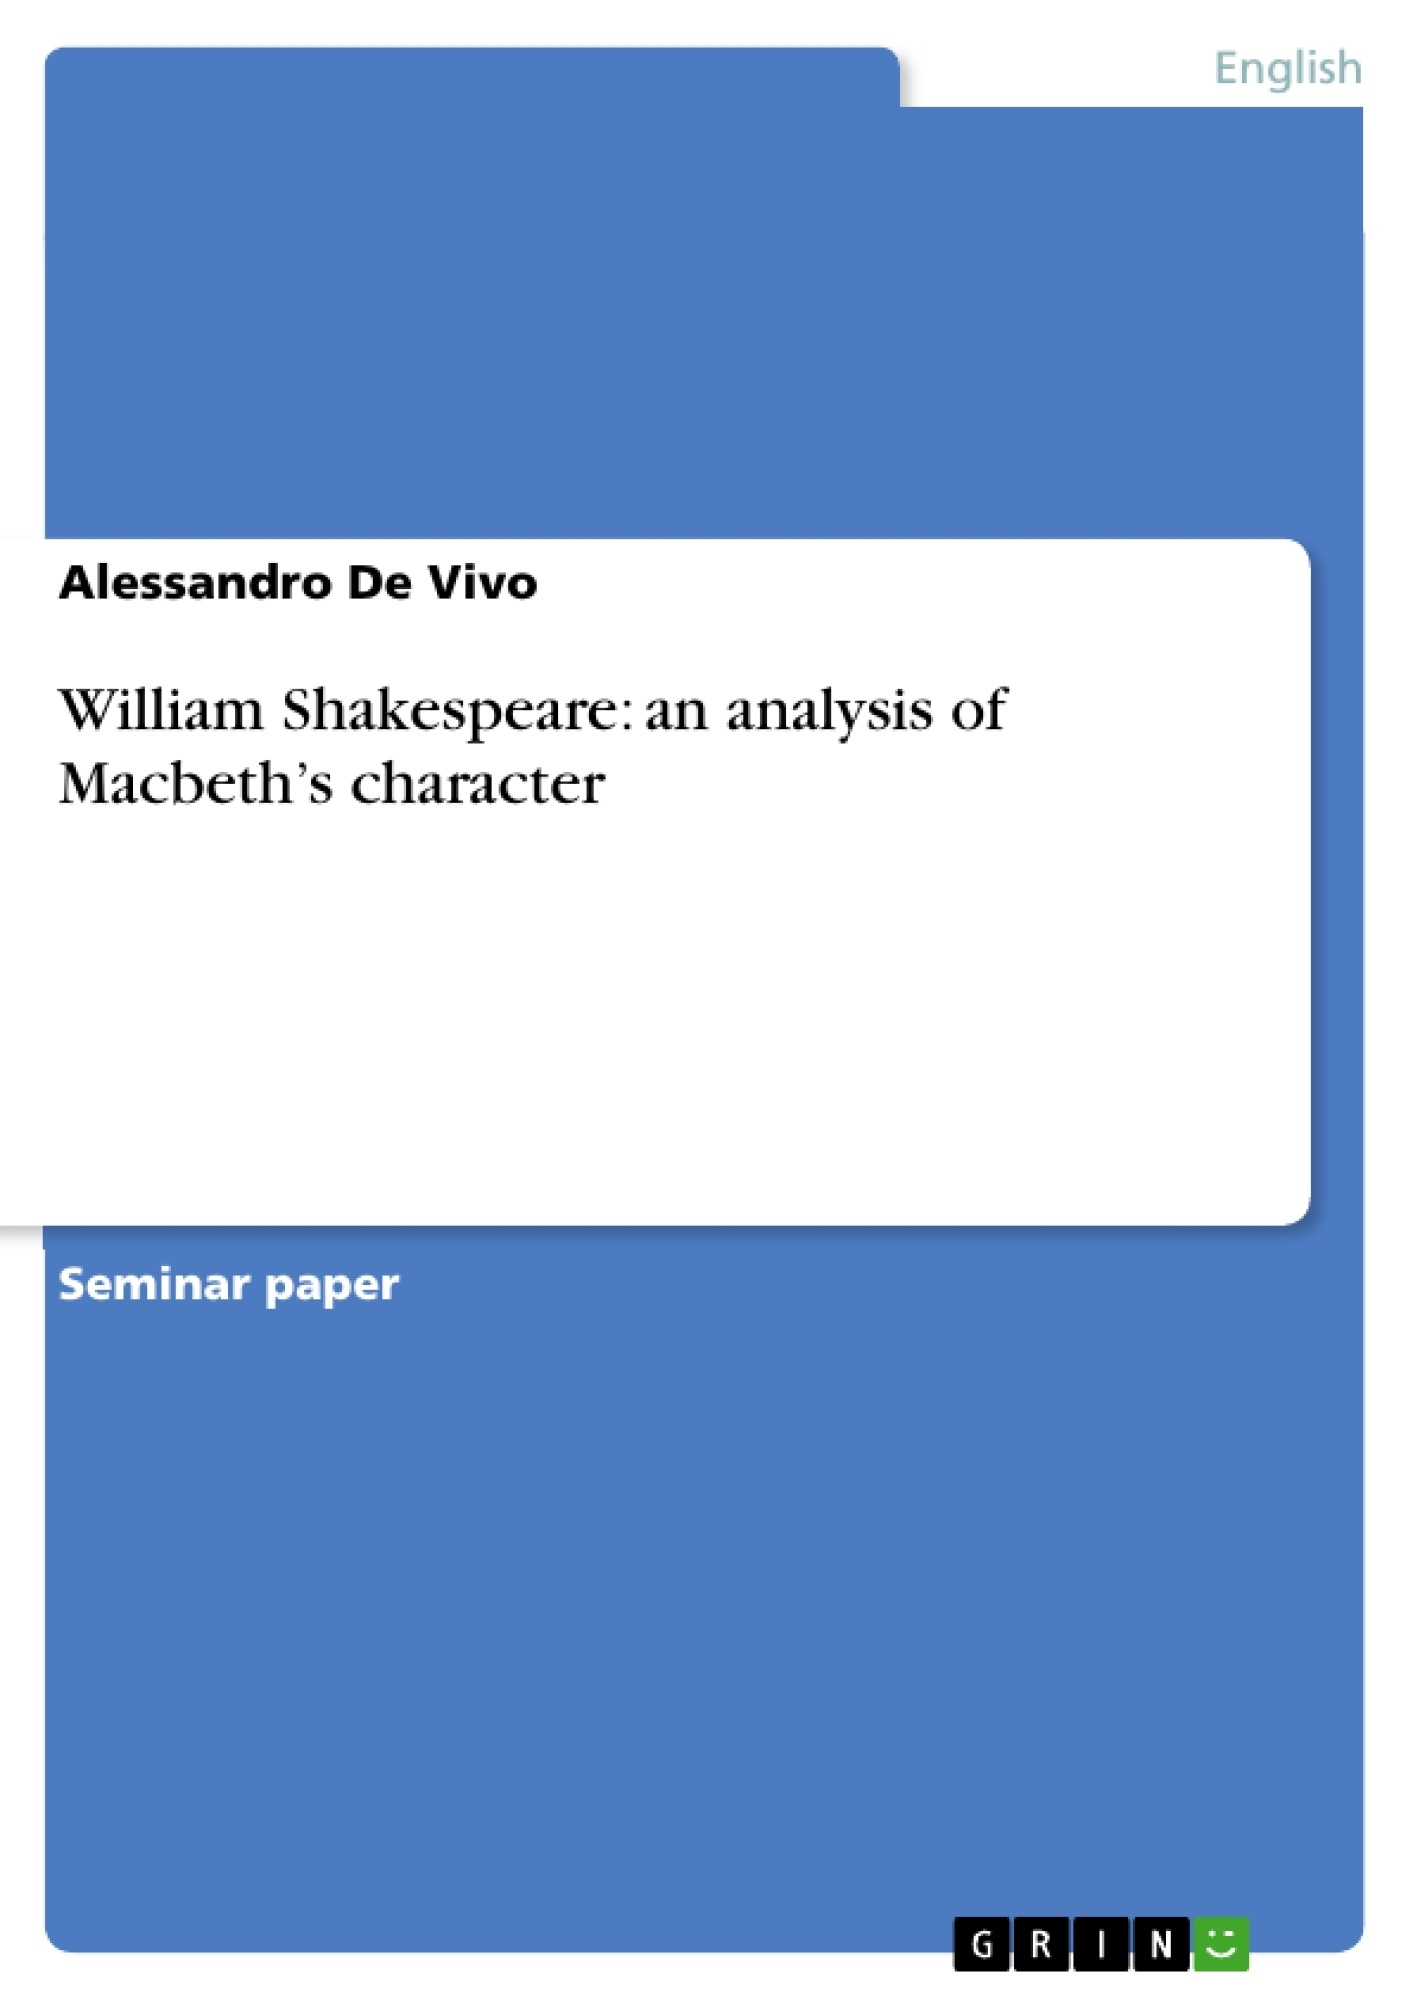 macbeth character analysis thesis However, as the play progresses, lady macbeth's character changes to one that  seems deeply regretful for her actions through lady macbeth's interactions.